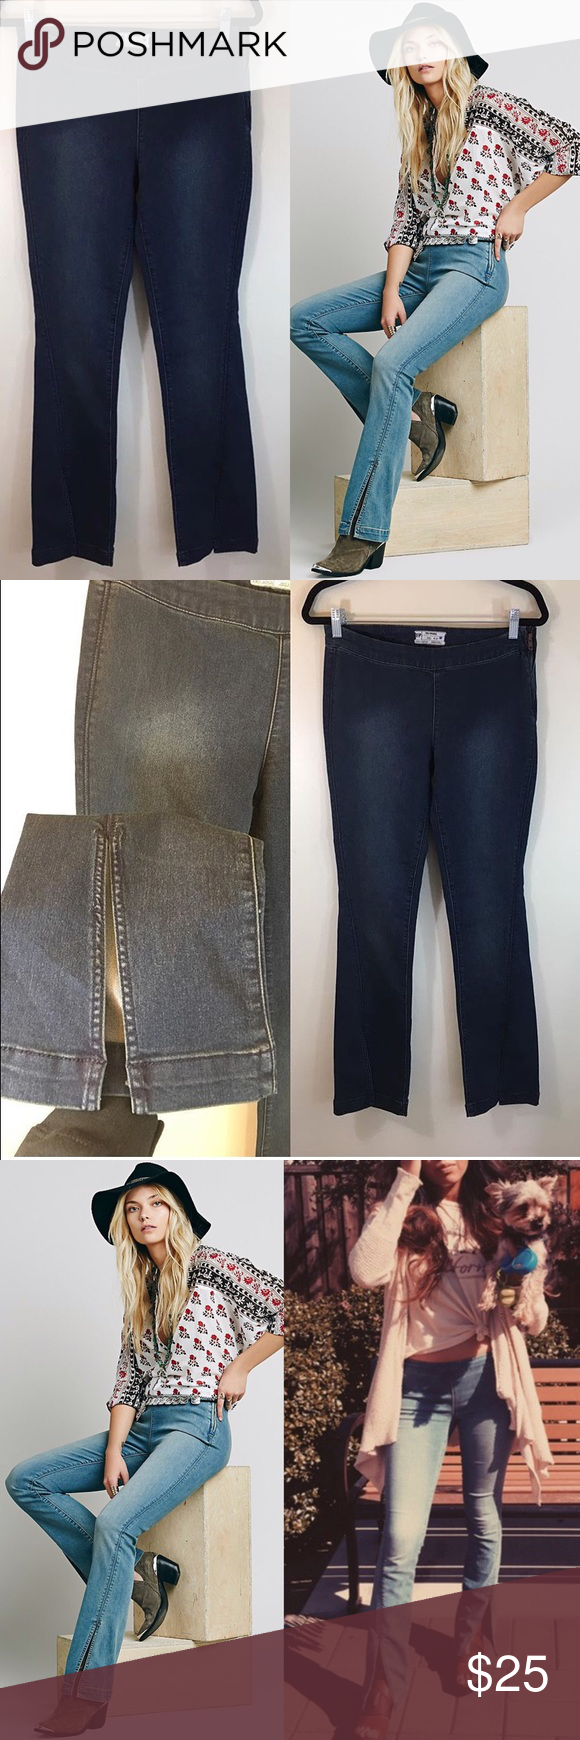 NEW Free People low slit denim flares Brand new never worn. Size 27. Label crossed off to prevent in store returns. They are the darker wash. The modeled photos are the lighter wash and just to see how they look on! Side zipper closure Free People Jeans Boot Cut